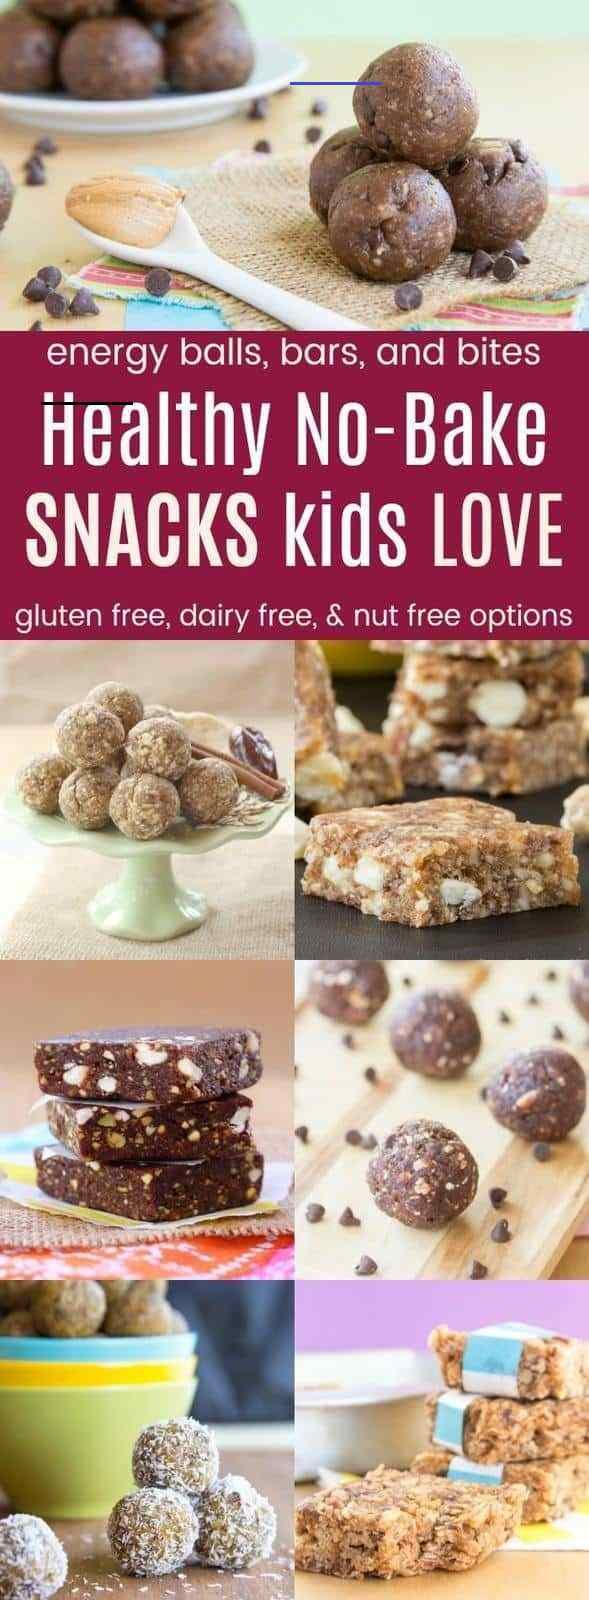 Healthy No-Bake Snacks Kids Love Healthy No-Bake Snacks Kids Love Healthy No-Bake Snacks Kids Love - recipes for energy balls and bites, snack bars, and granola bars to pack in a lunchbox or for after school snacks. Many have gluten free, dairy free, nut free, and peanut free options. #snacks #Kidfriendly<br> Delicious and EASY recipes for HEALTHY NO-BAKE SNACKS that kids LOVE to eat! No-bake energy bites, healthy no-bake snack bars, and no-bake energy balls.